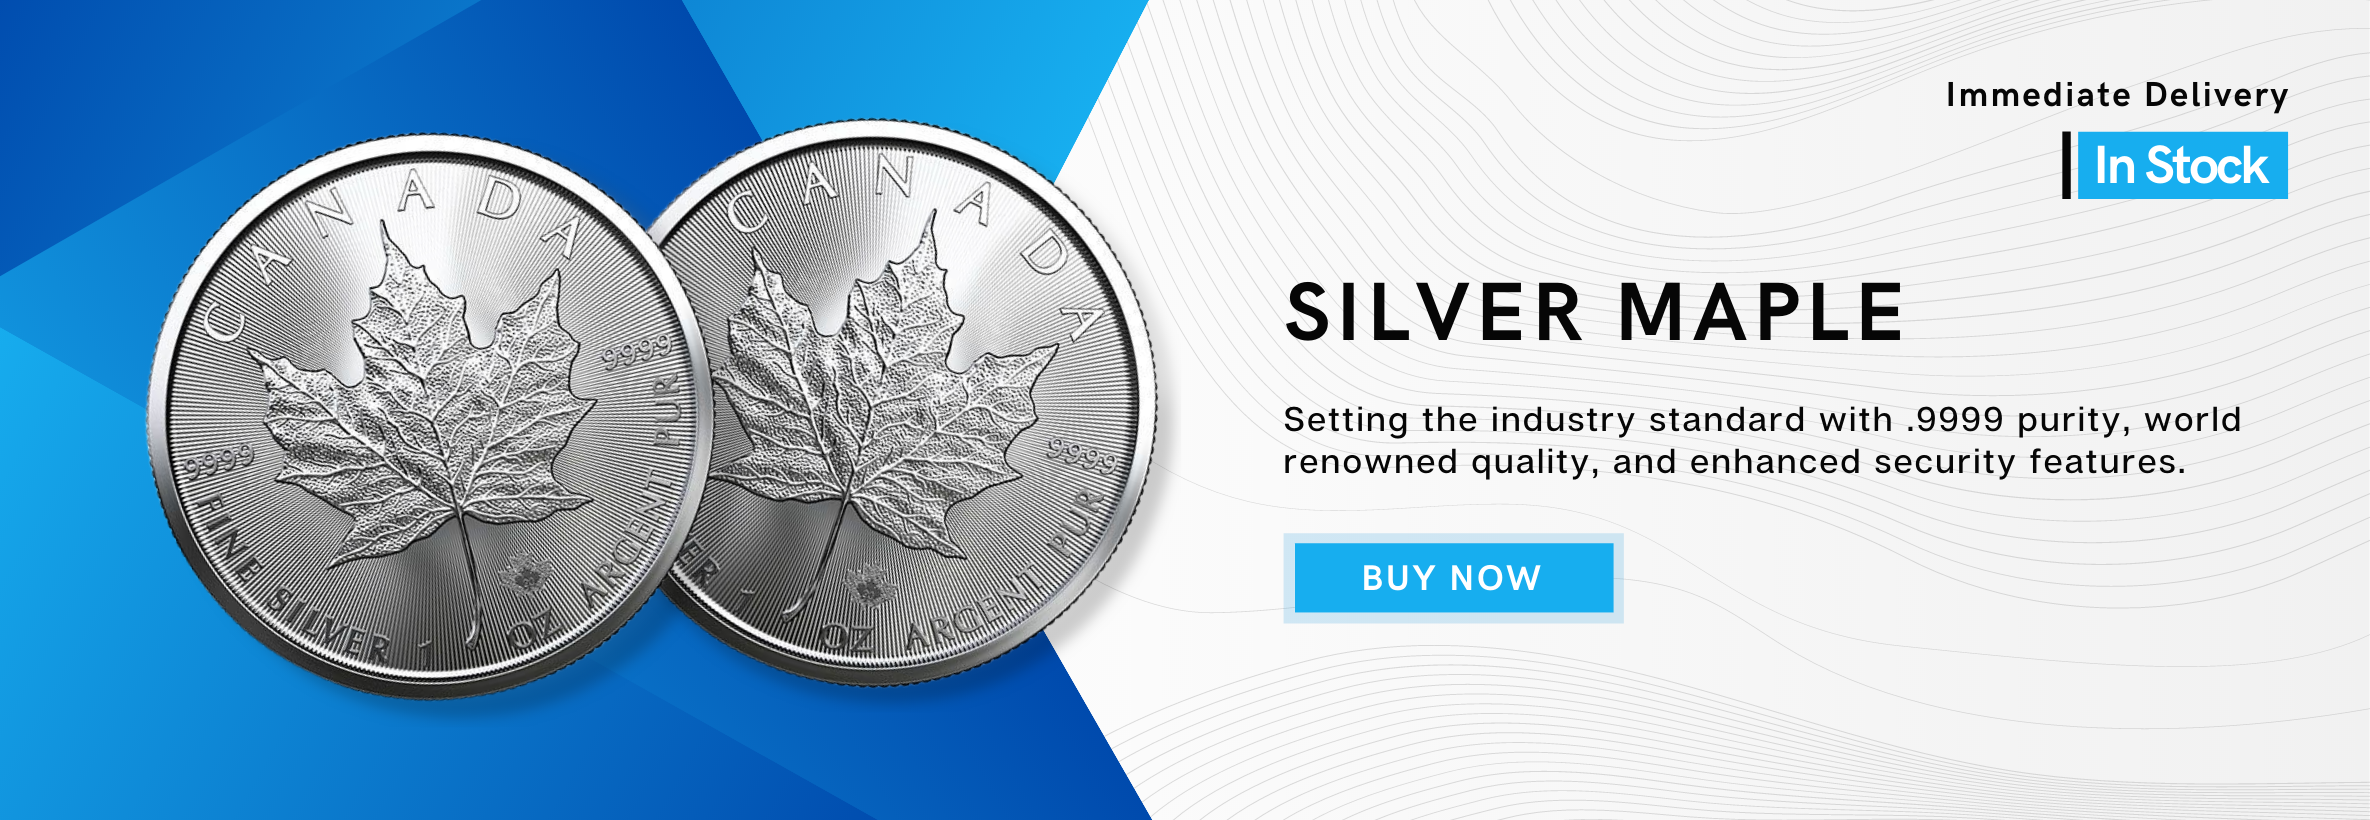 Silver Maple Coin 2021 Royal Canadian Mint